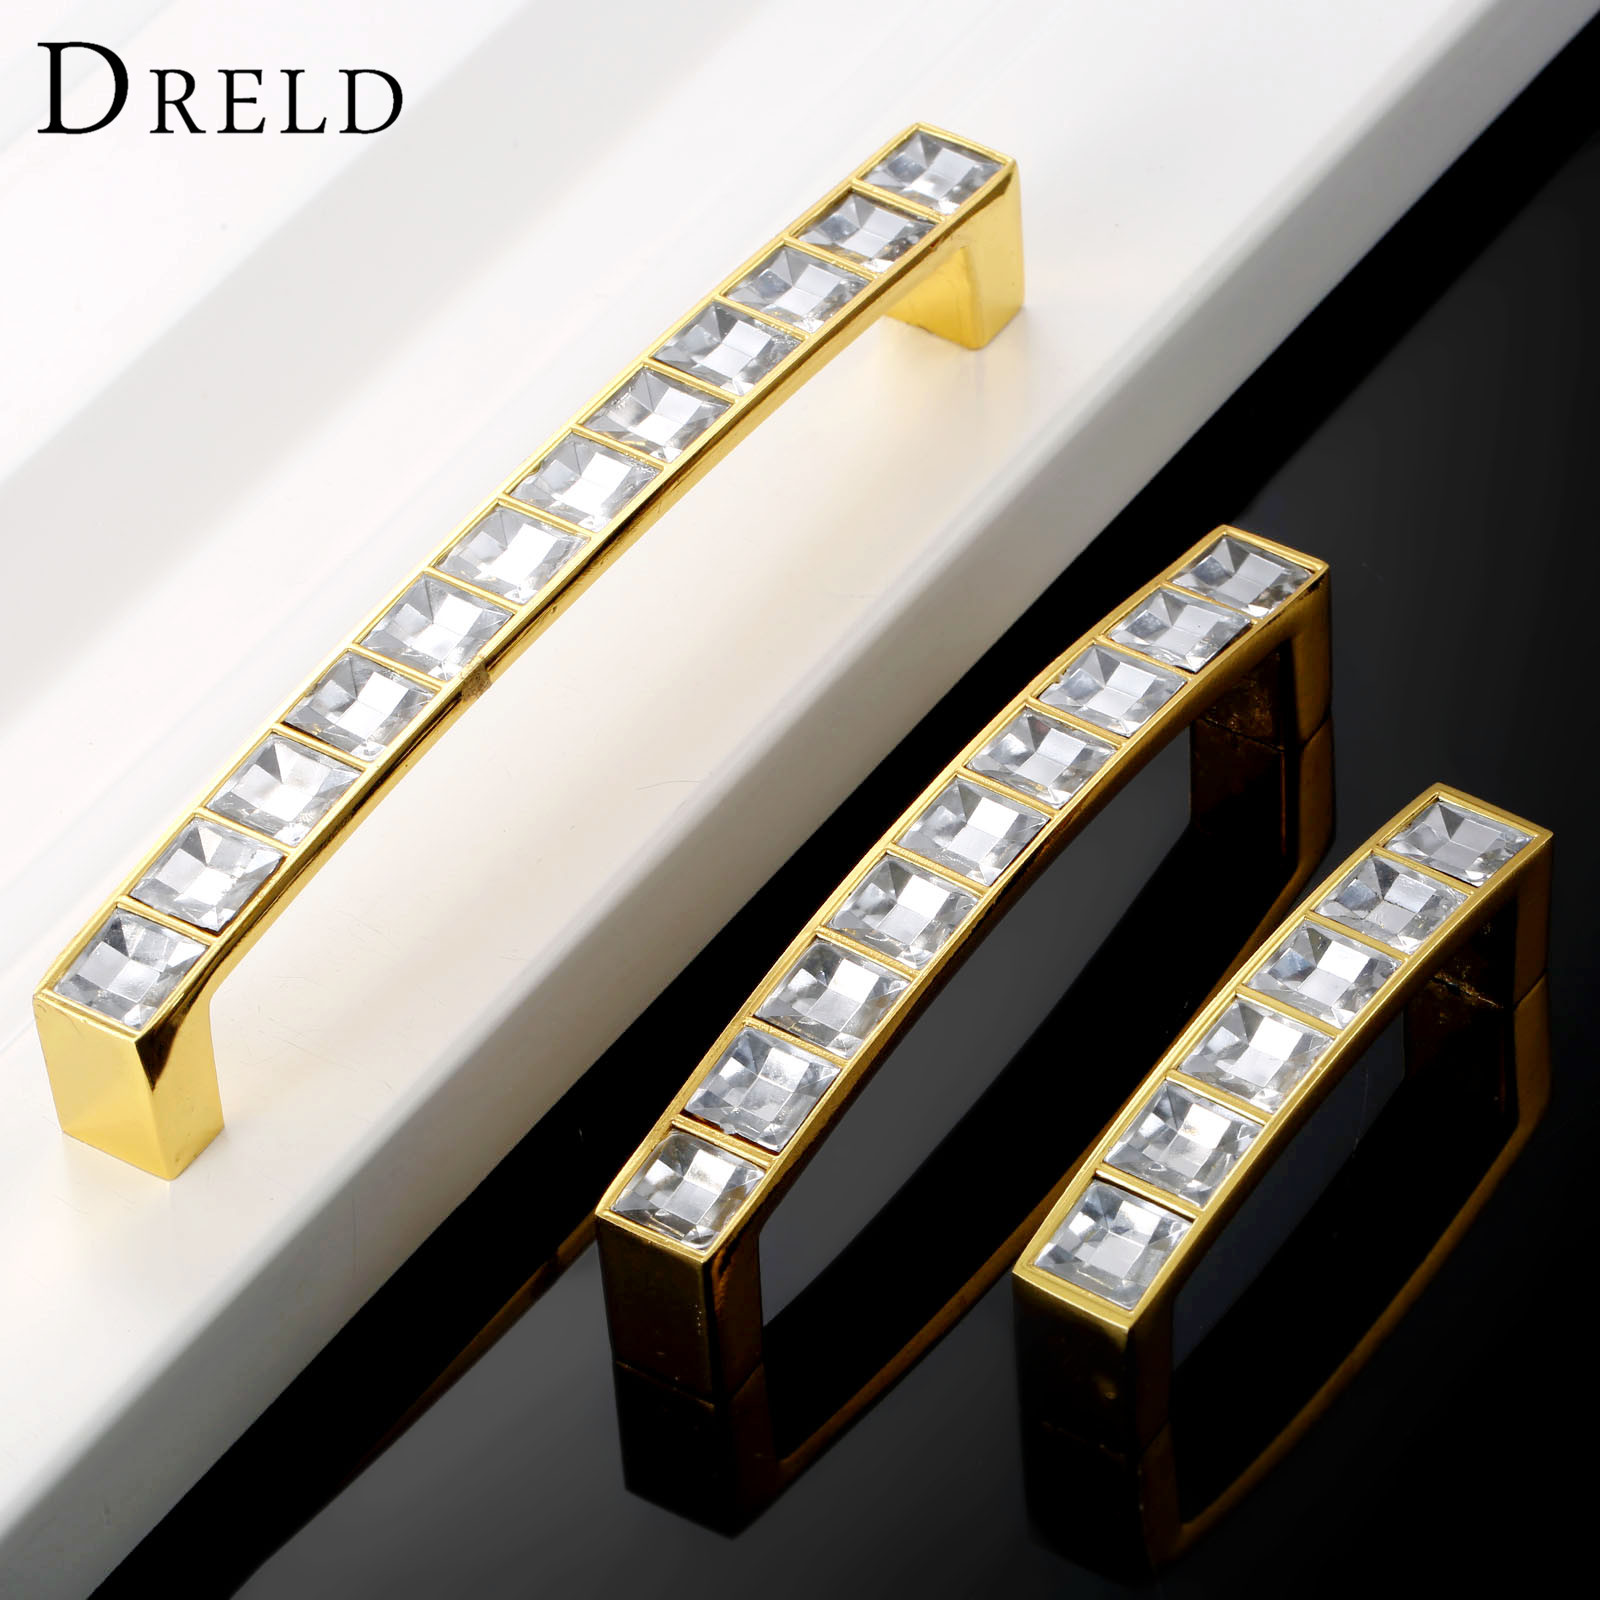 DRELD 64/96/128mm Furniture Handle Glass Crystal Cabinet Knobs and Handles Cupboard Drawer Kitchen Pull Knobs Furniture Hardware dreld 96 128 160mm furniture handle modern cabinet knobs and handles door cupboard drawer kitchen pull handle furniture hardware